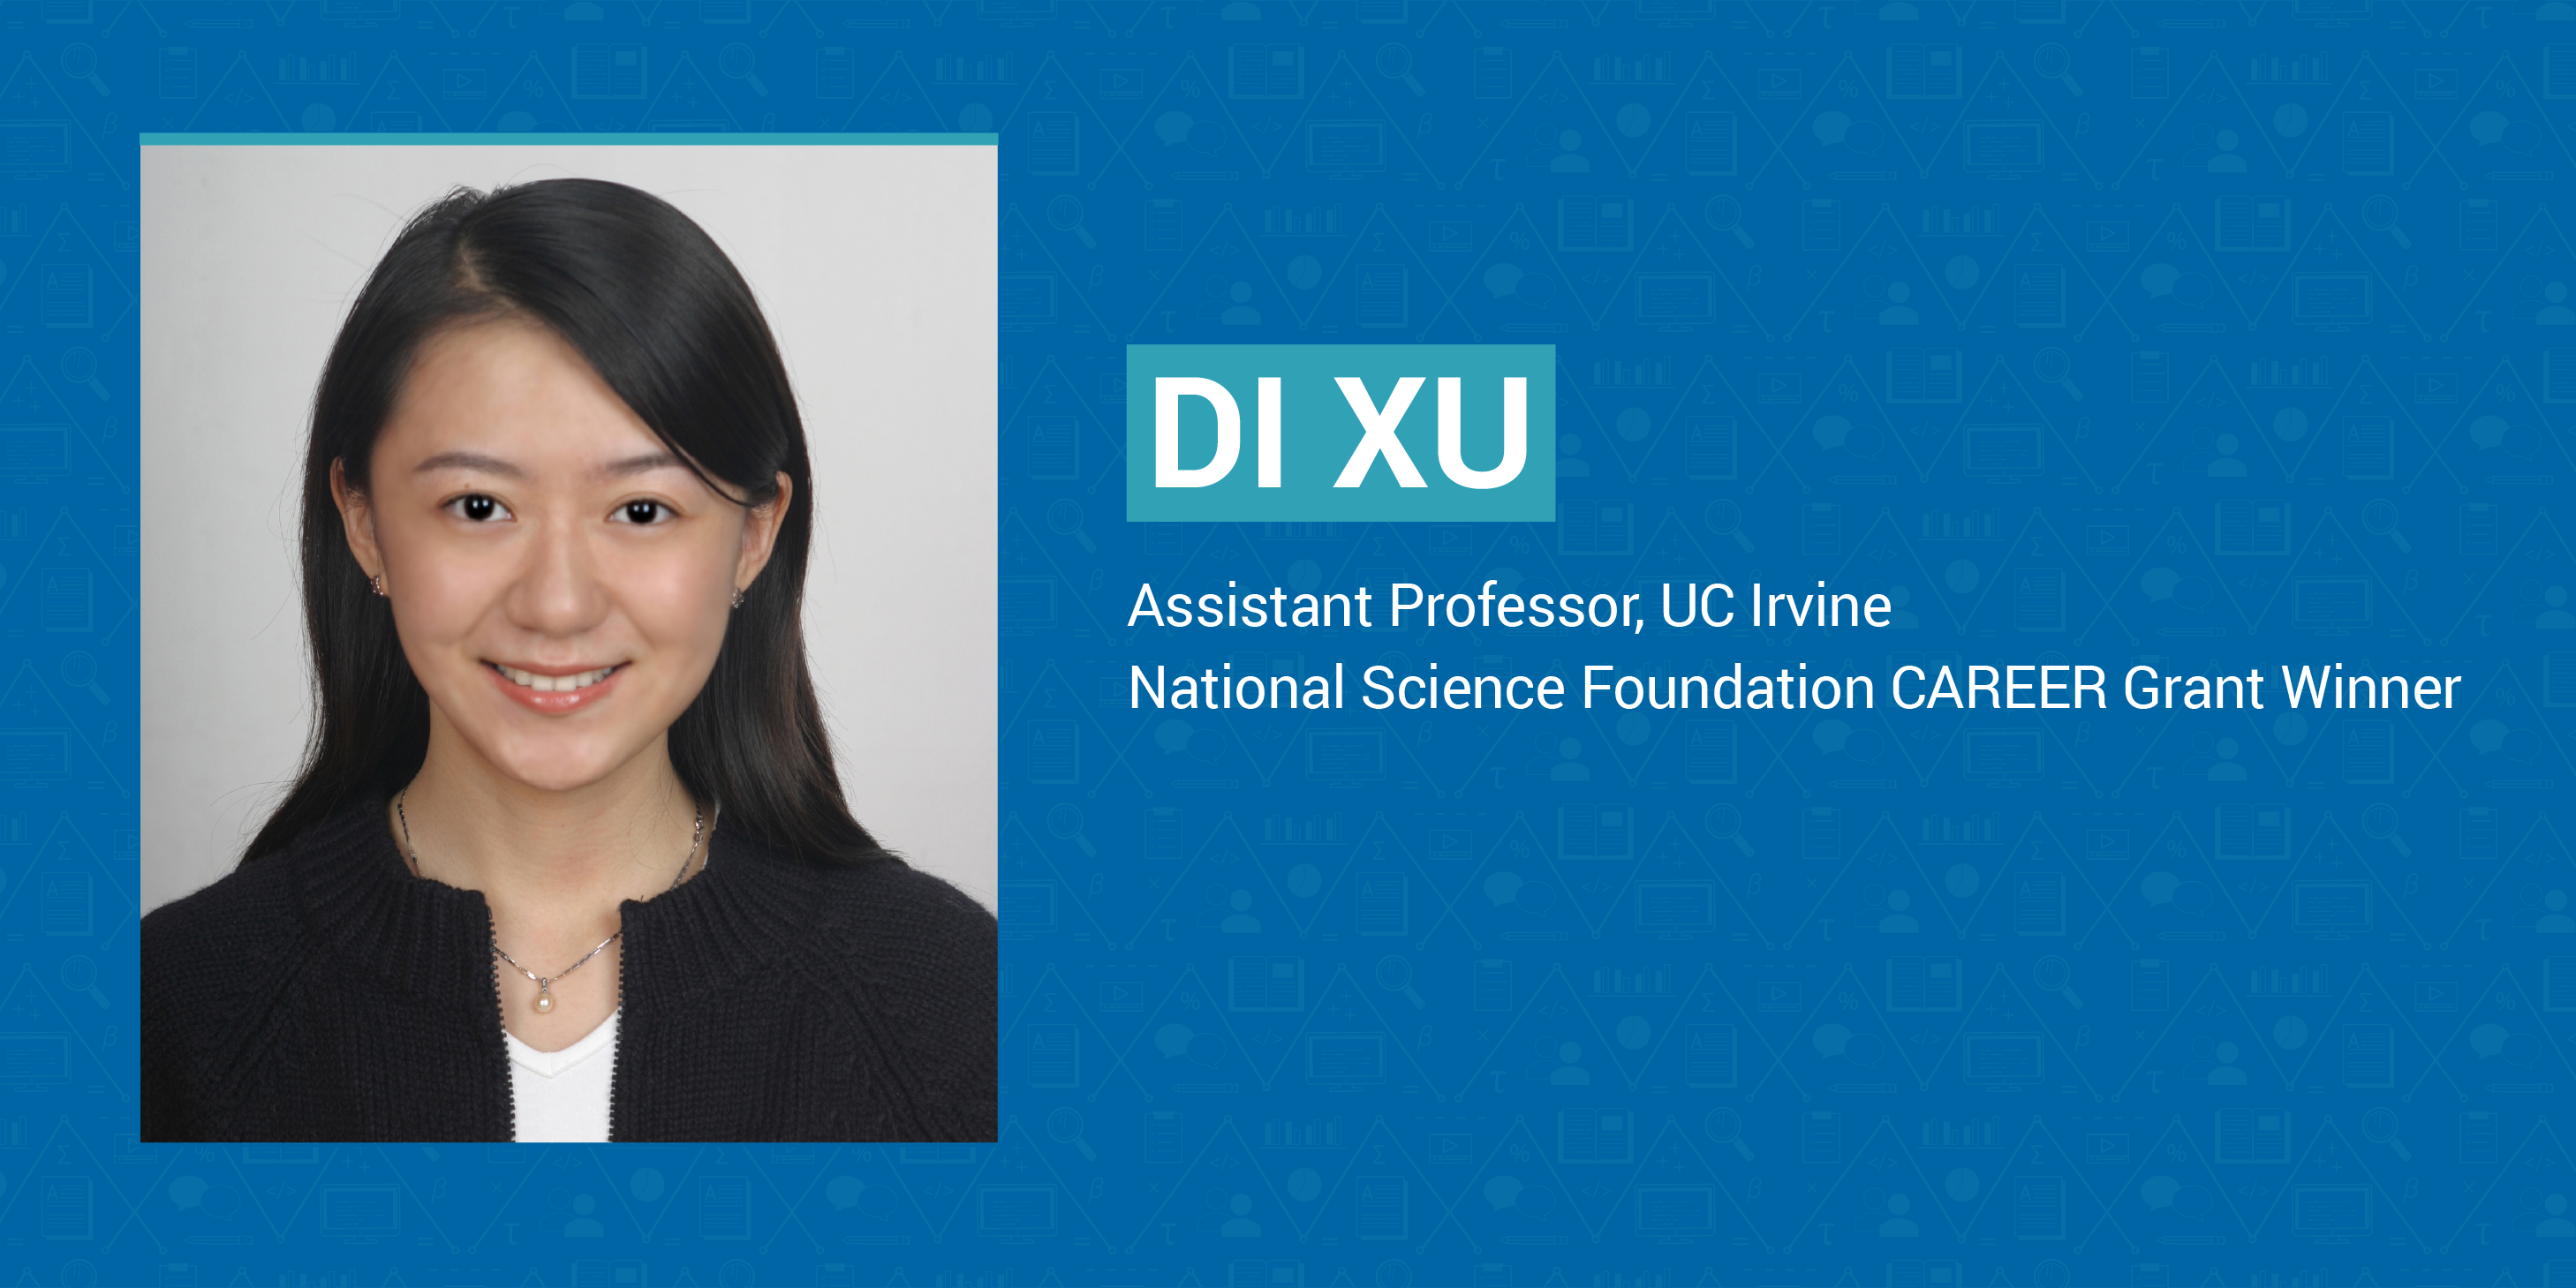 Di Xu, Assistant Professor, University of California, Irvine. National Science Foundation CAREER Grant Winner